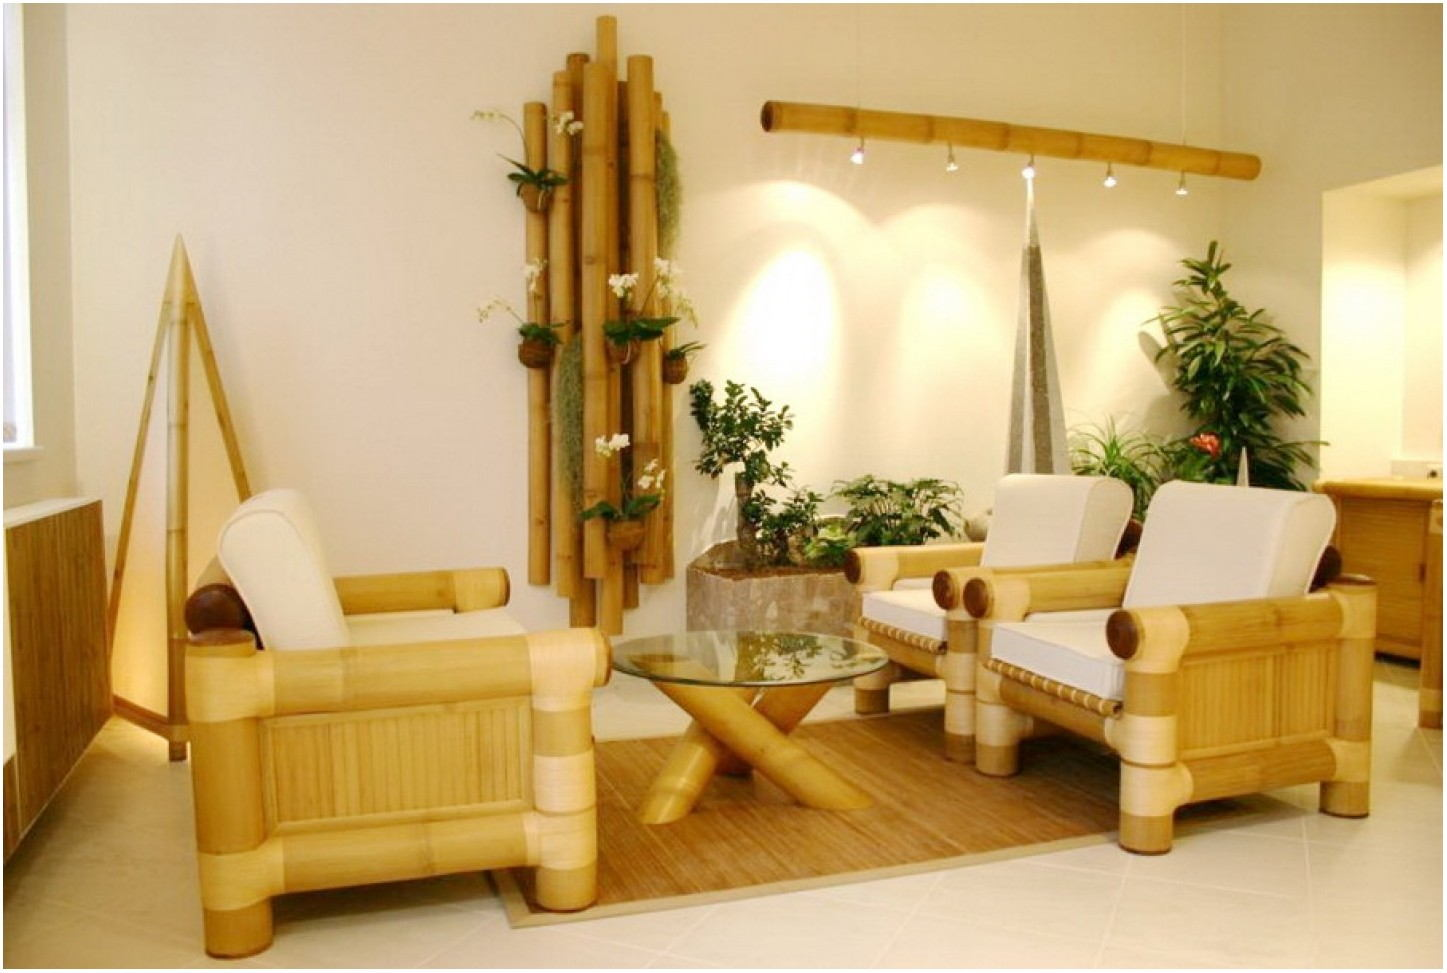 Bamboo Living Room Interior Design